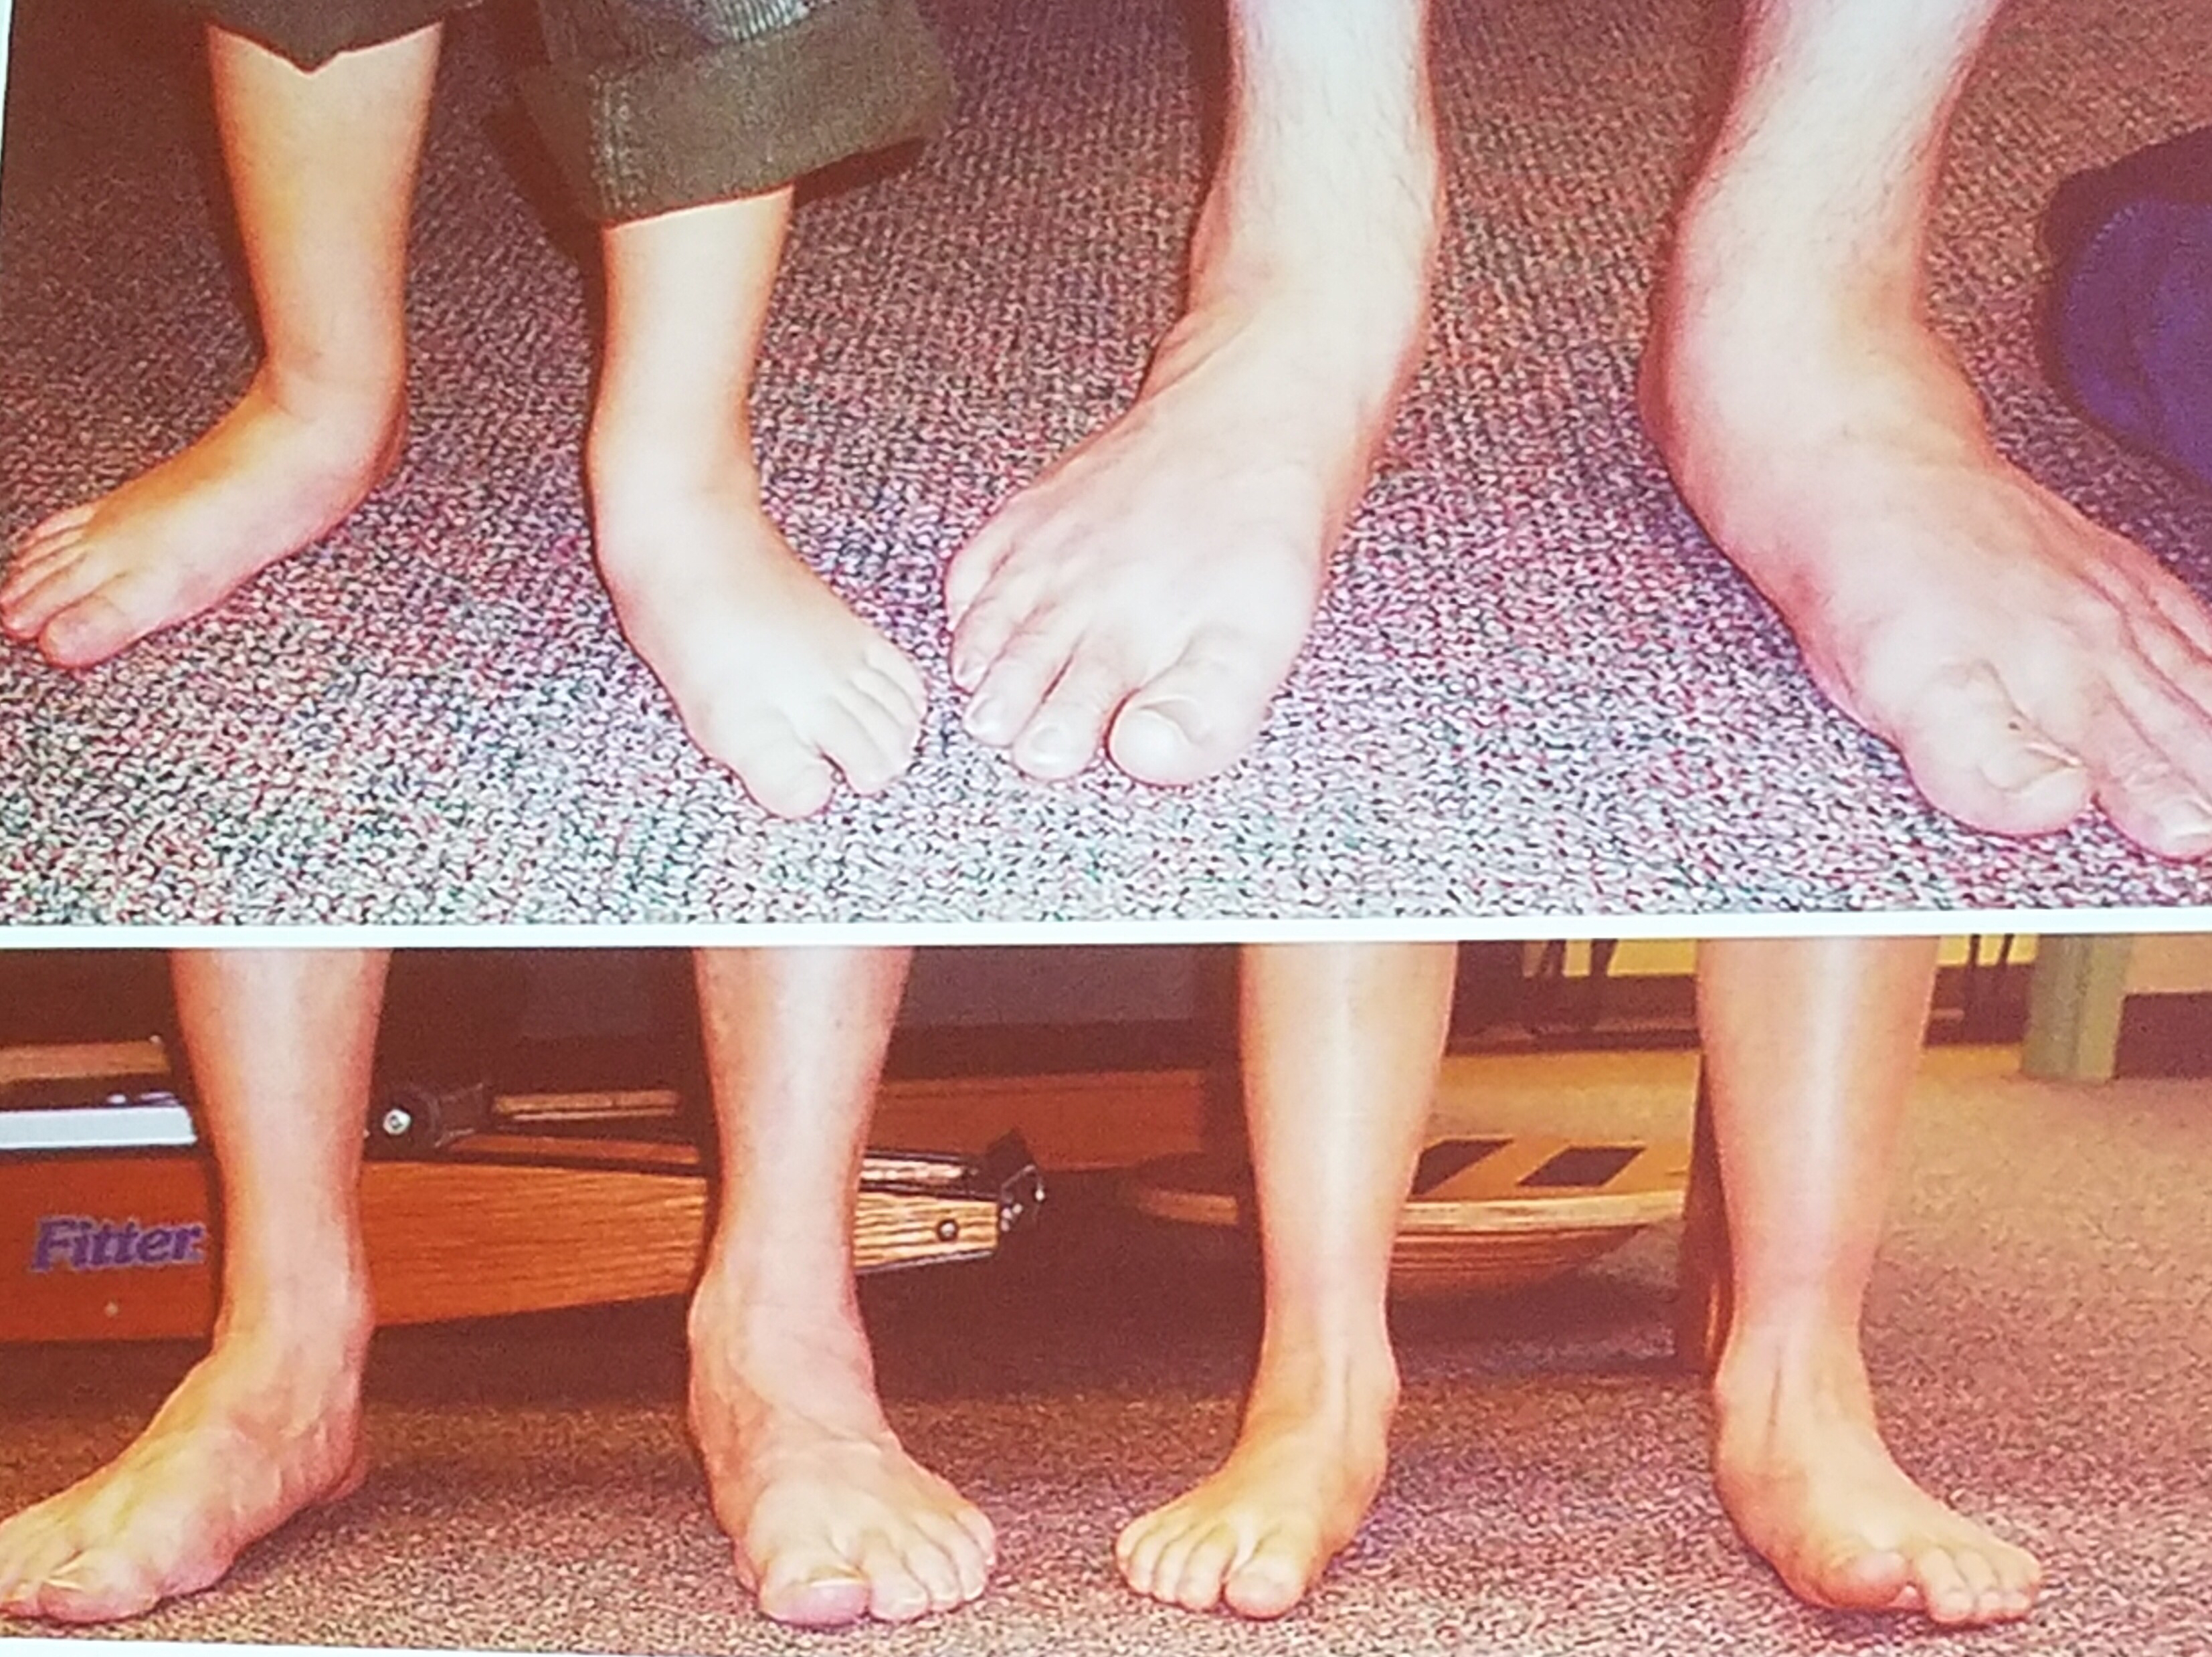 The US Orthotic Center also makes insoles for children